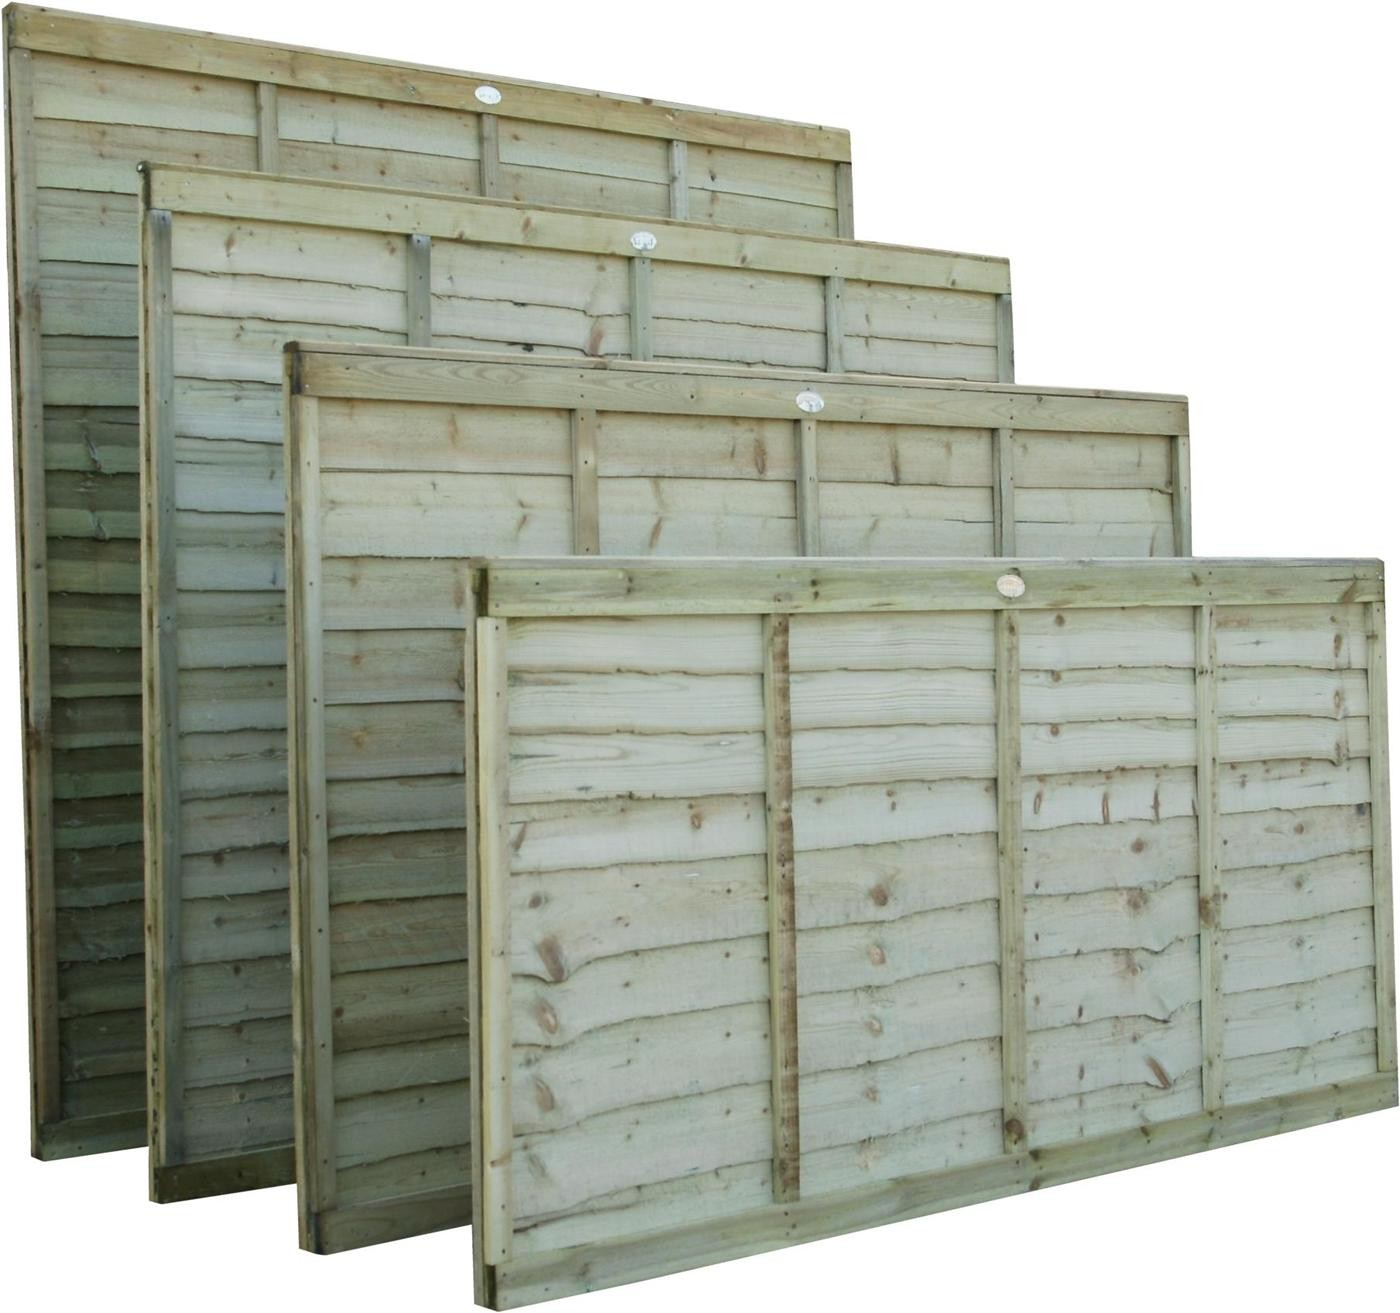 1830 x 1830mm Superlap Fence Panel (Professional) Green